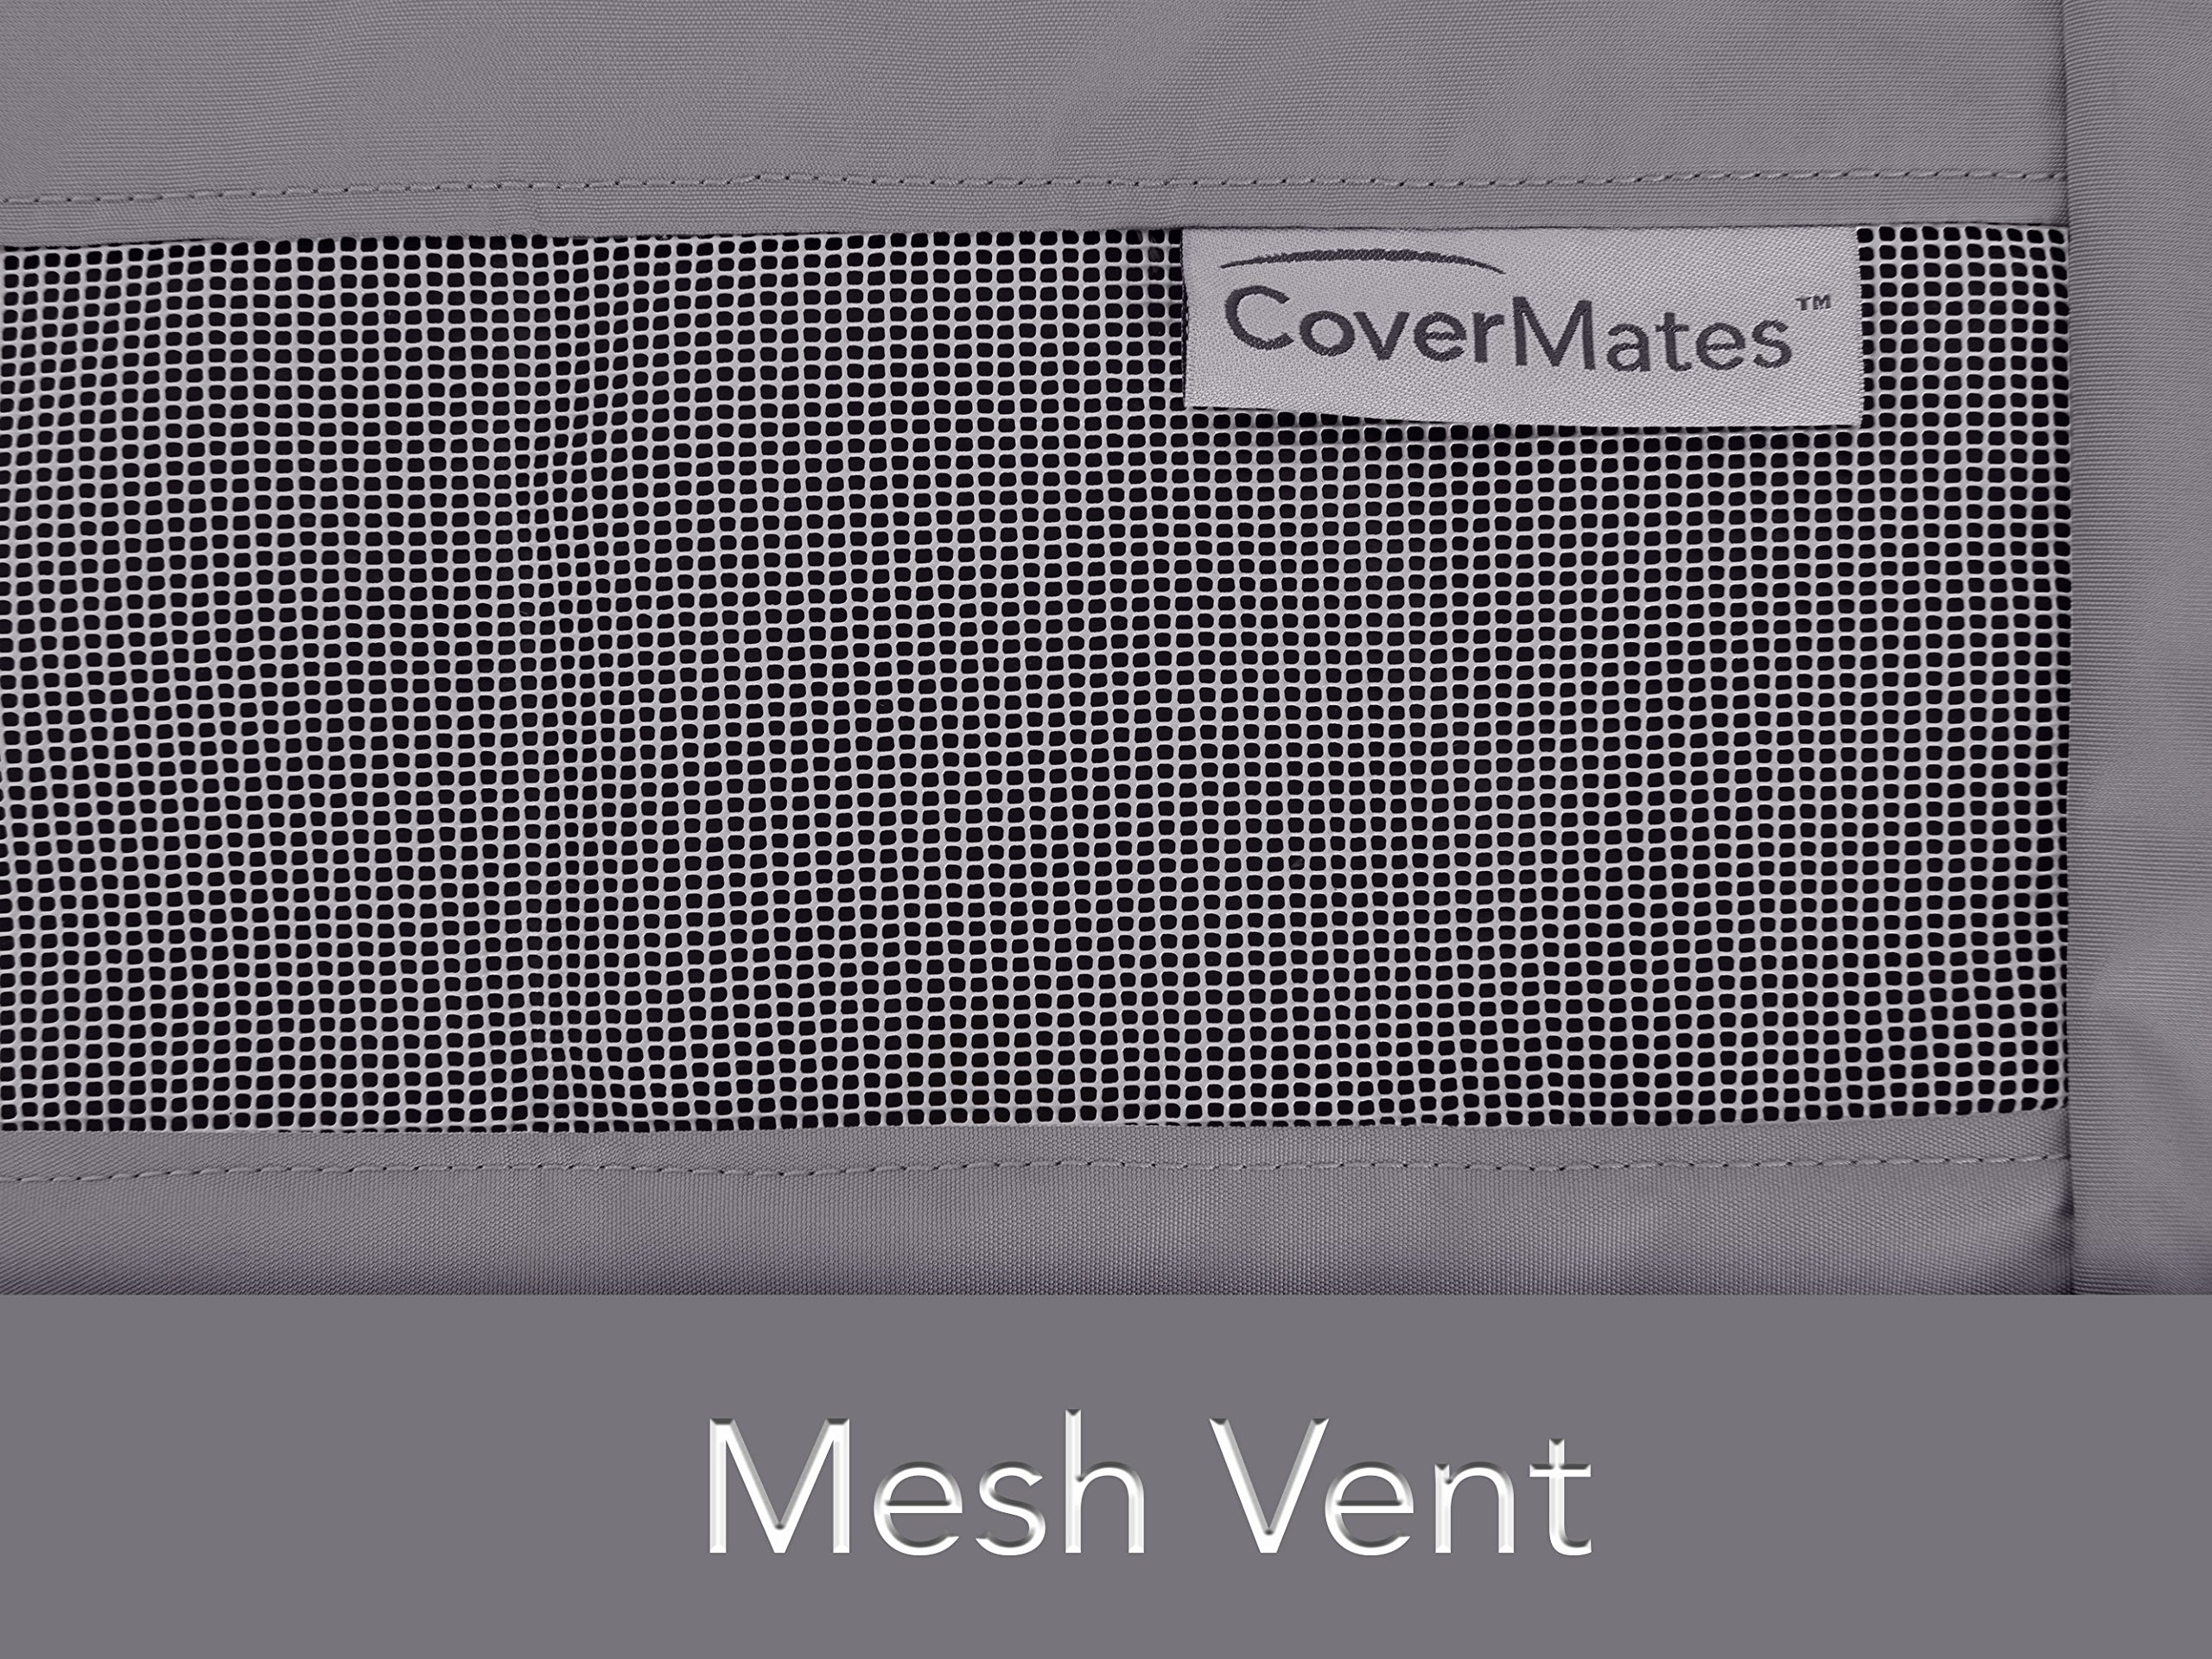 CoverMates – Cushion Storage Bag – 75W x 18D x 26H – Elite Collection – 3 YR Warranty – Year Around Protection - Charcoal by CoverMates (Image #3)